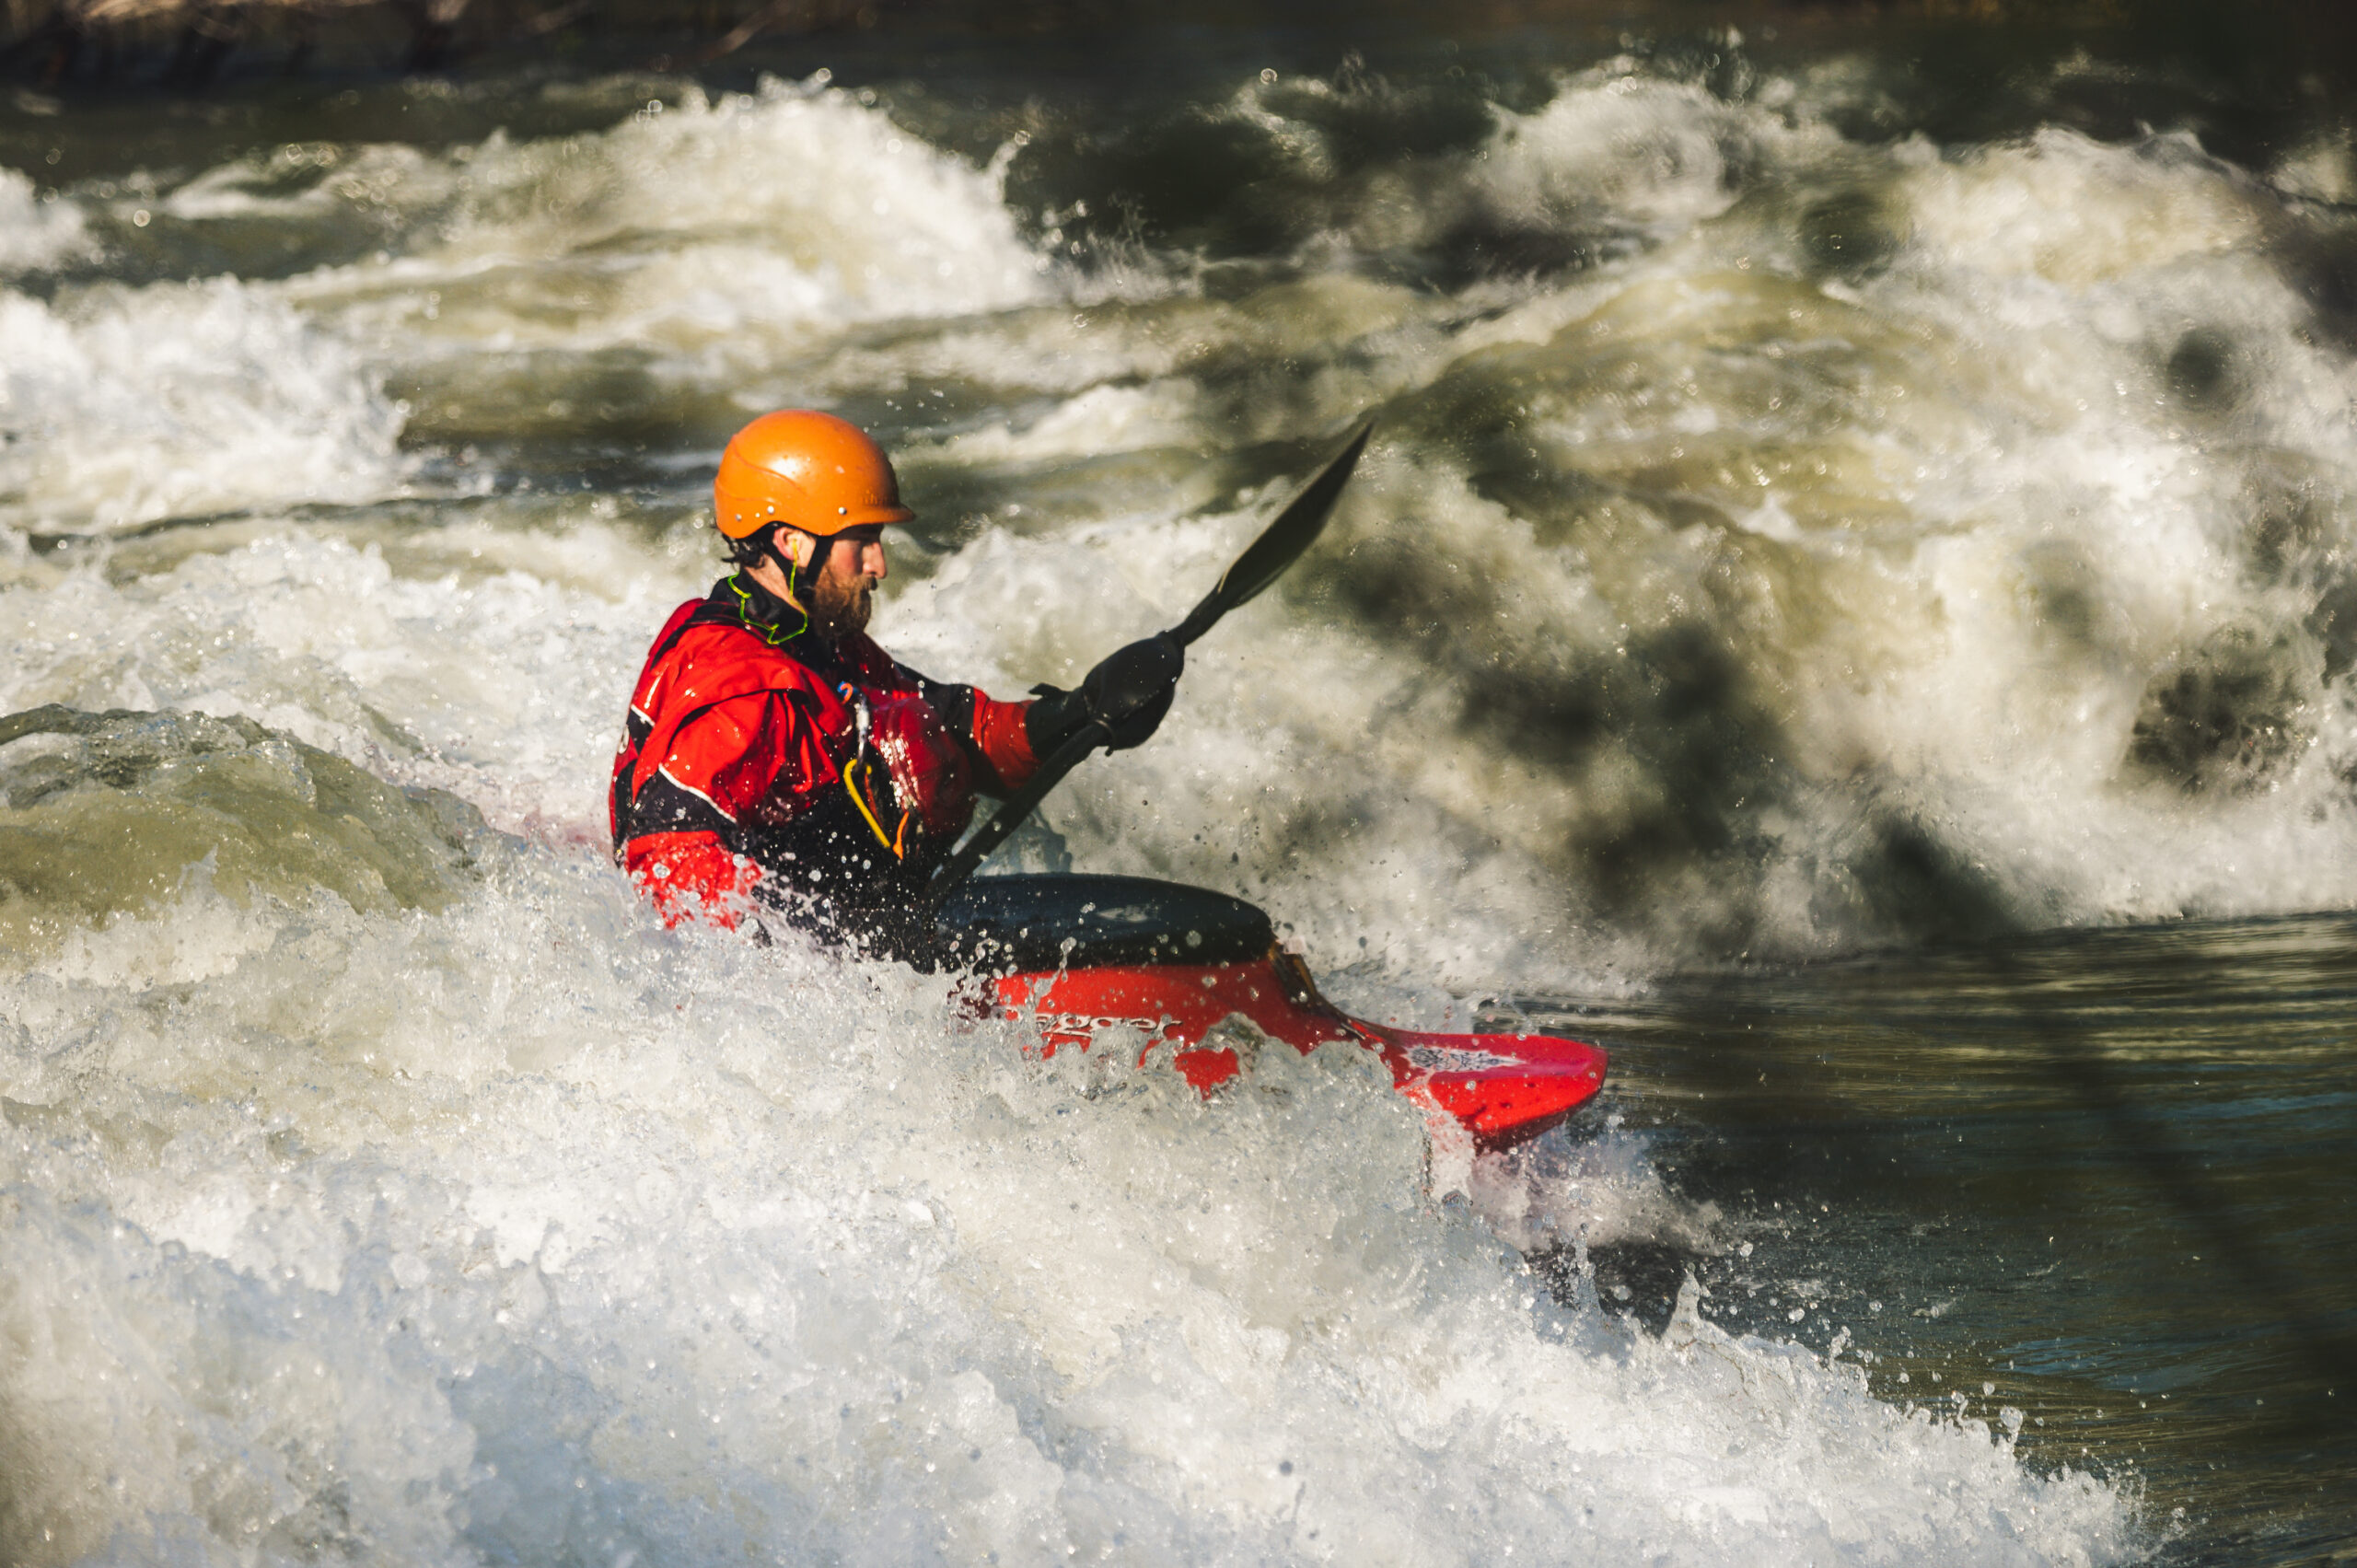 PAI Case Study: Emerging Stronger by Navigating Whitewater in an Uncertain Time